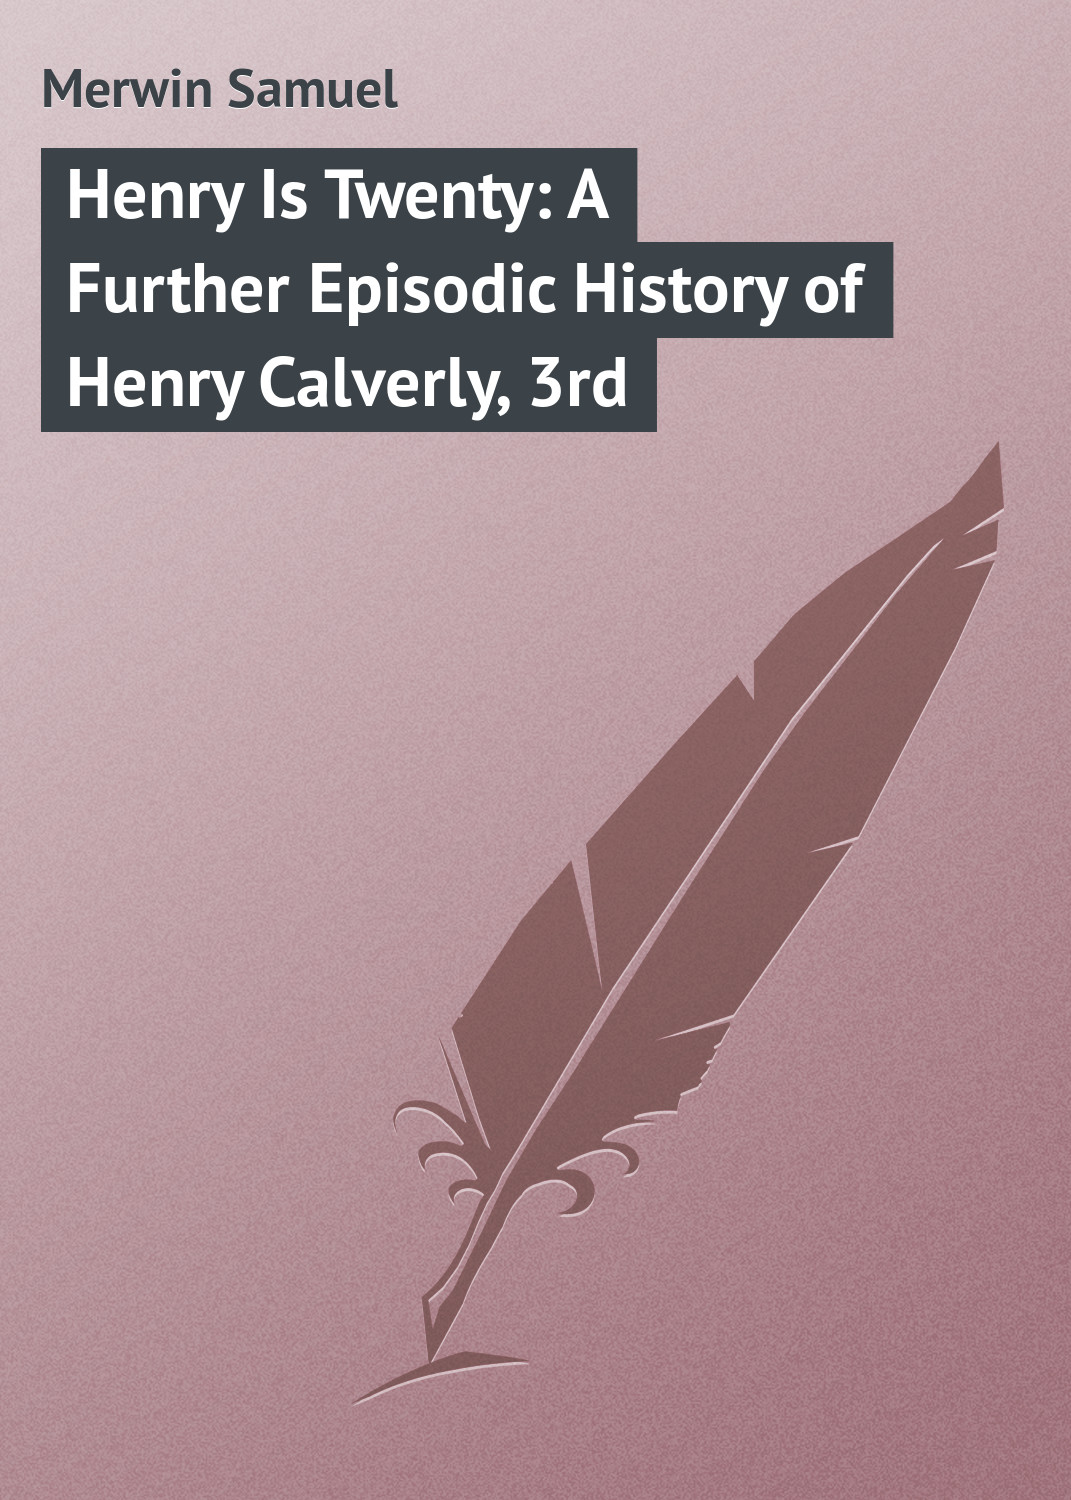 Merwin Samuel Henry Is Twenty A Further Episodic History of Henry Calverly 3rd